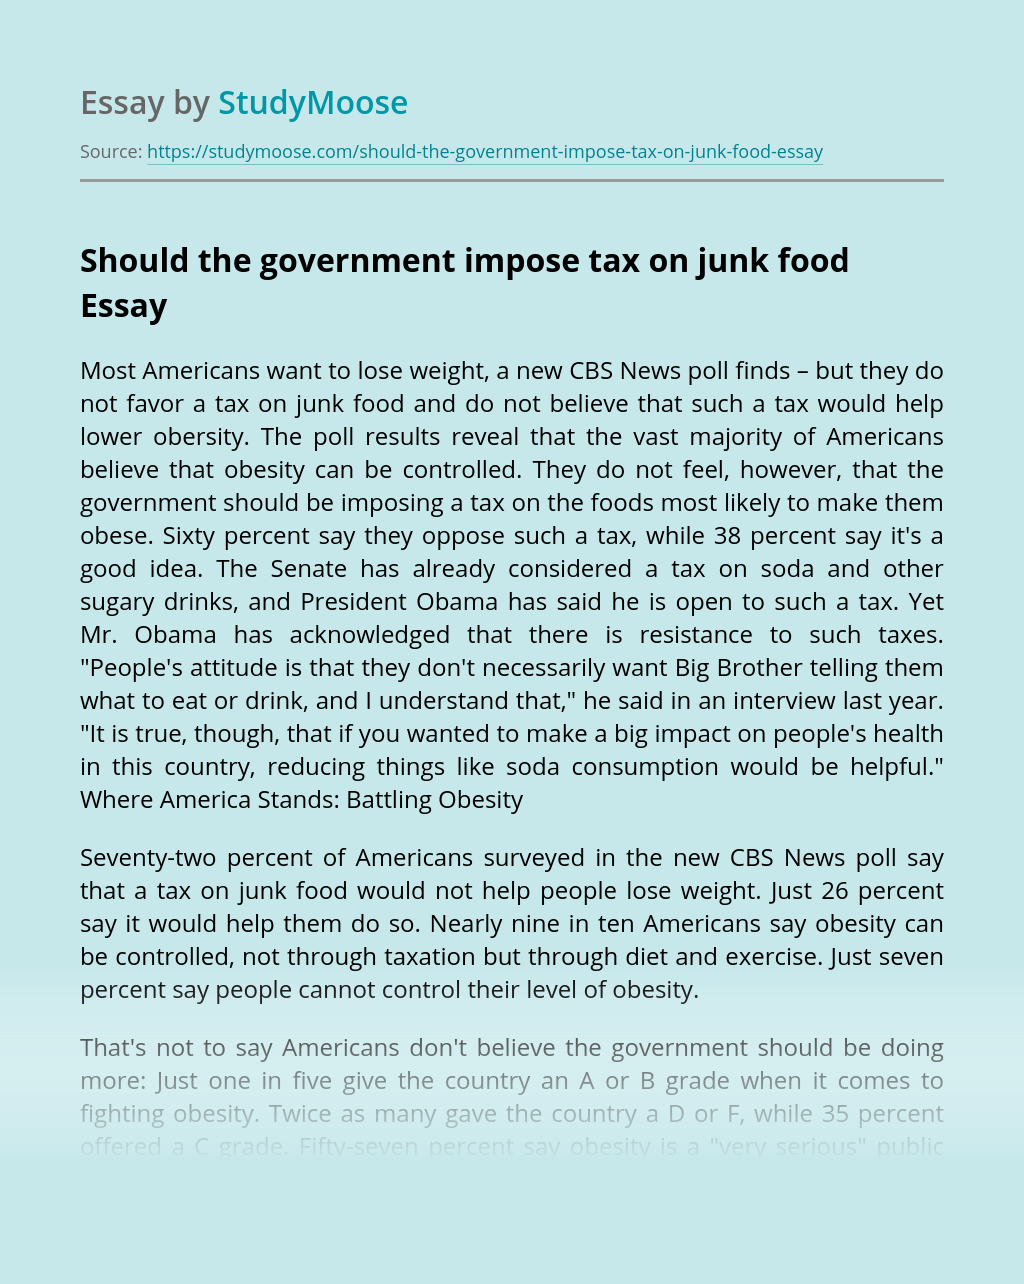 Should the government impose tax on junk food